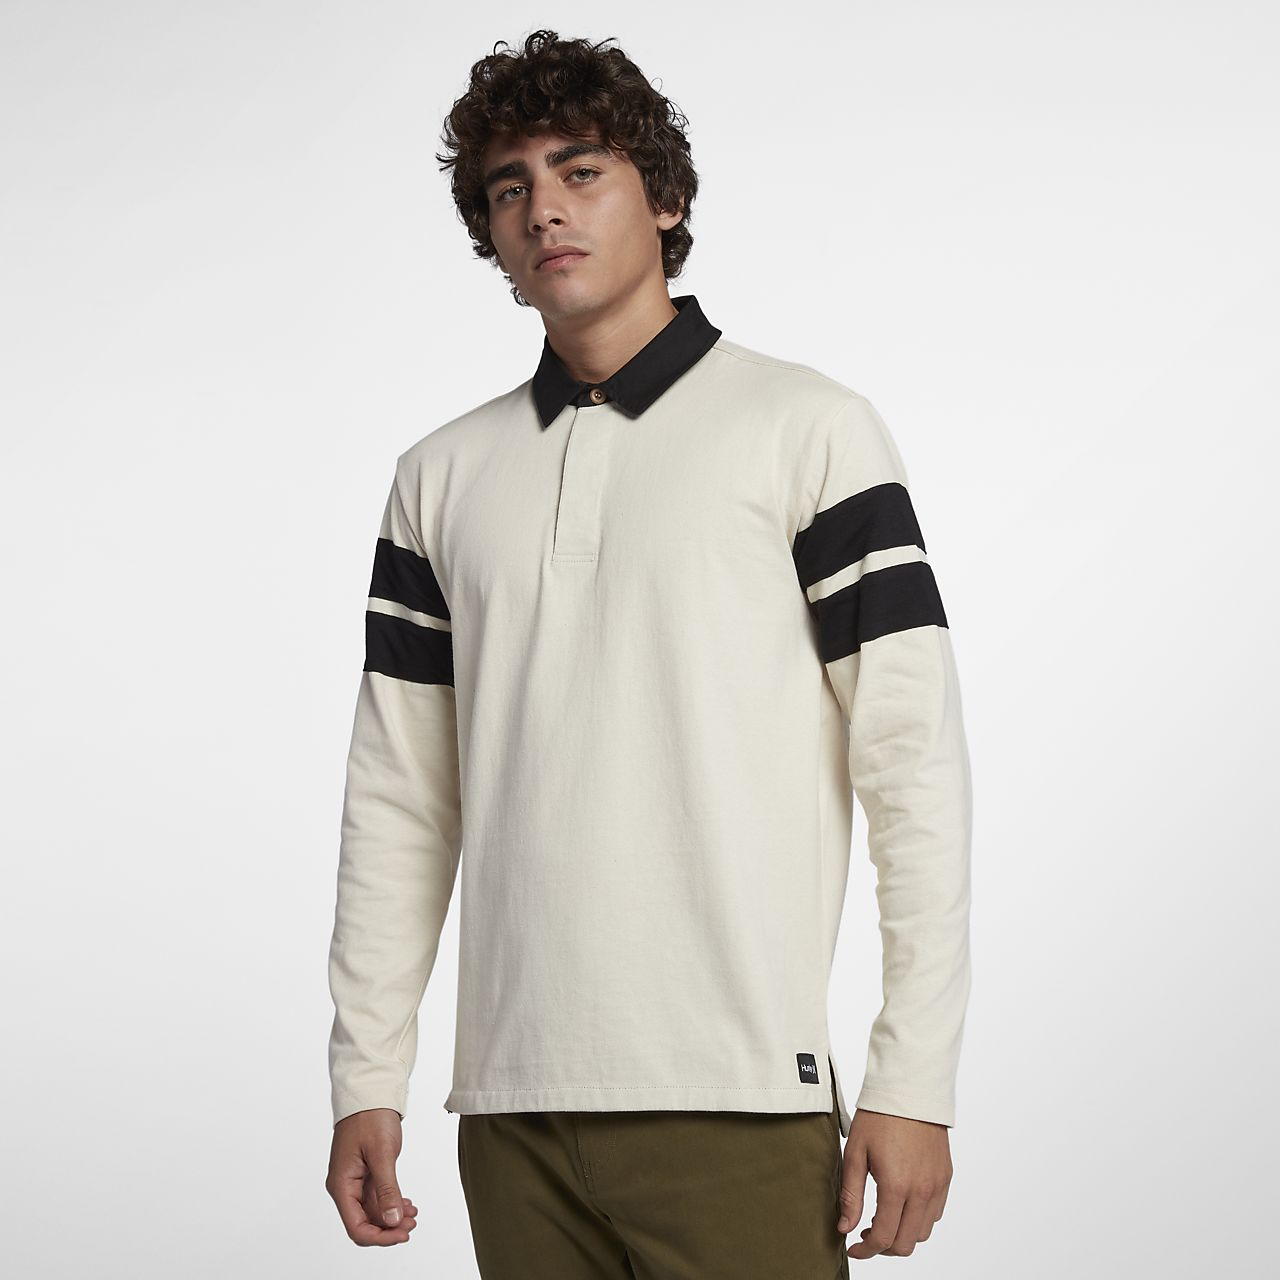 Hurley Rugby Mens Long Sleeve Polo Nike